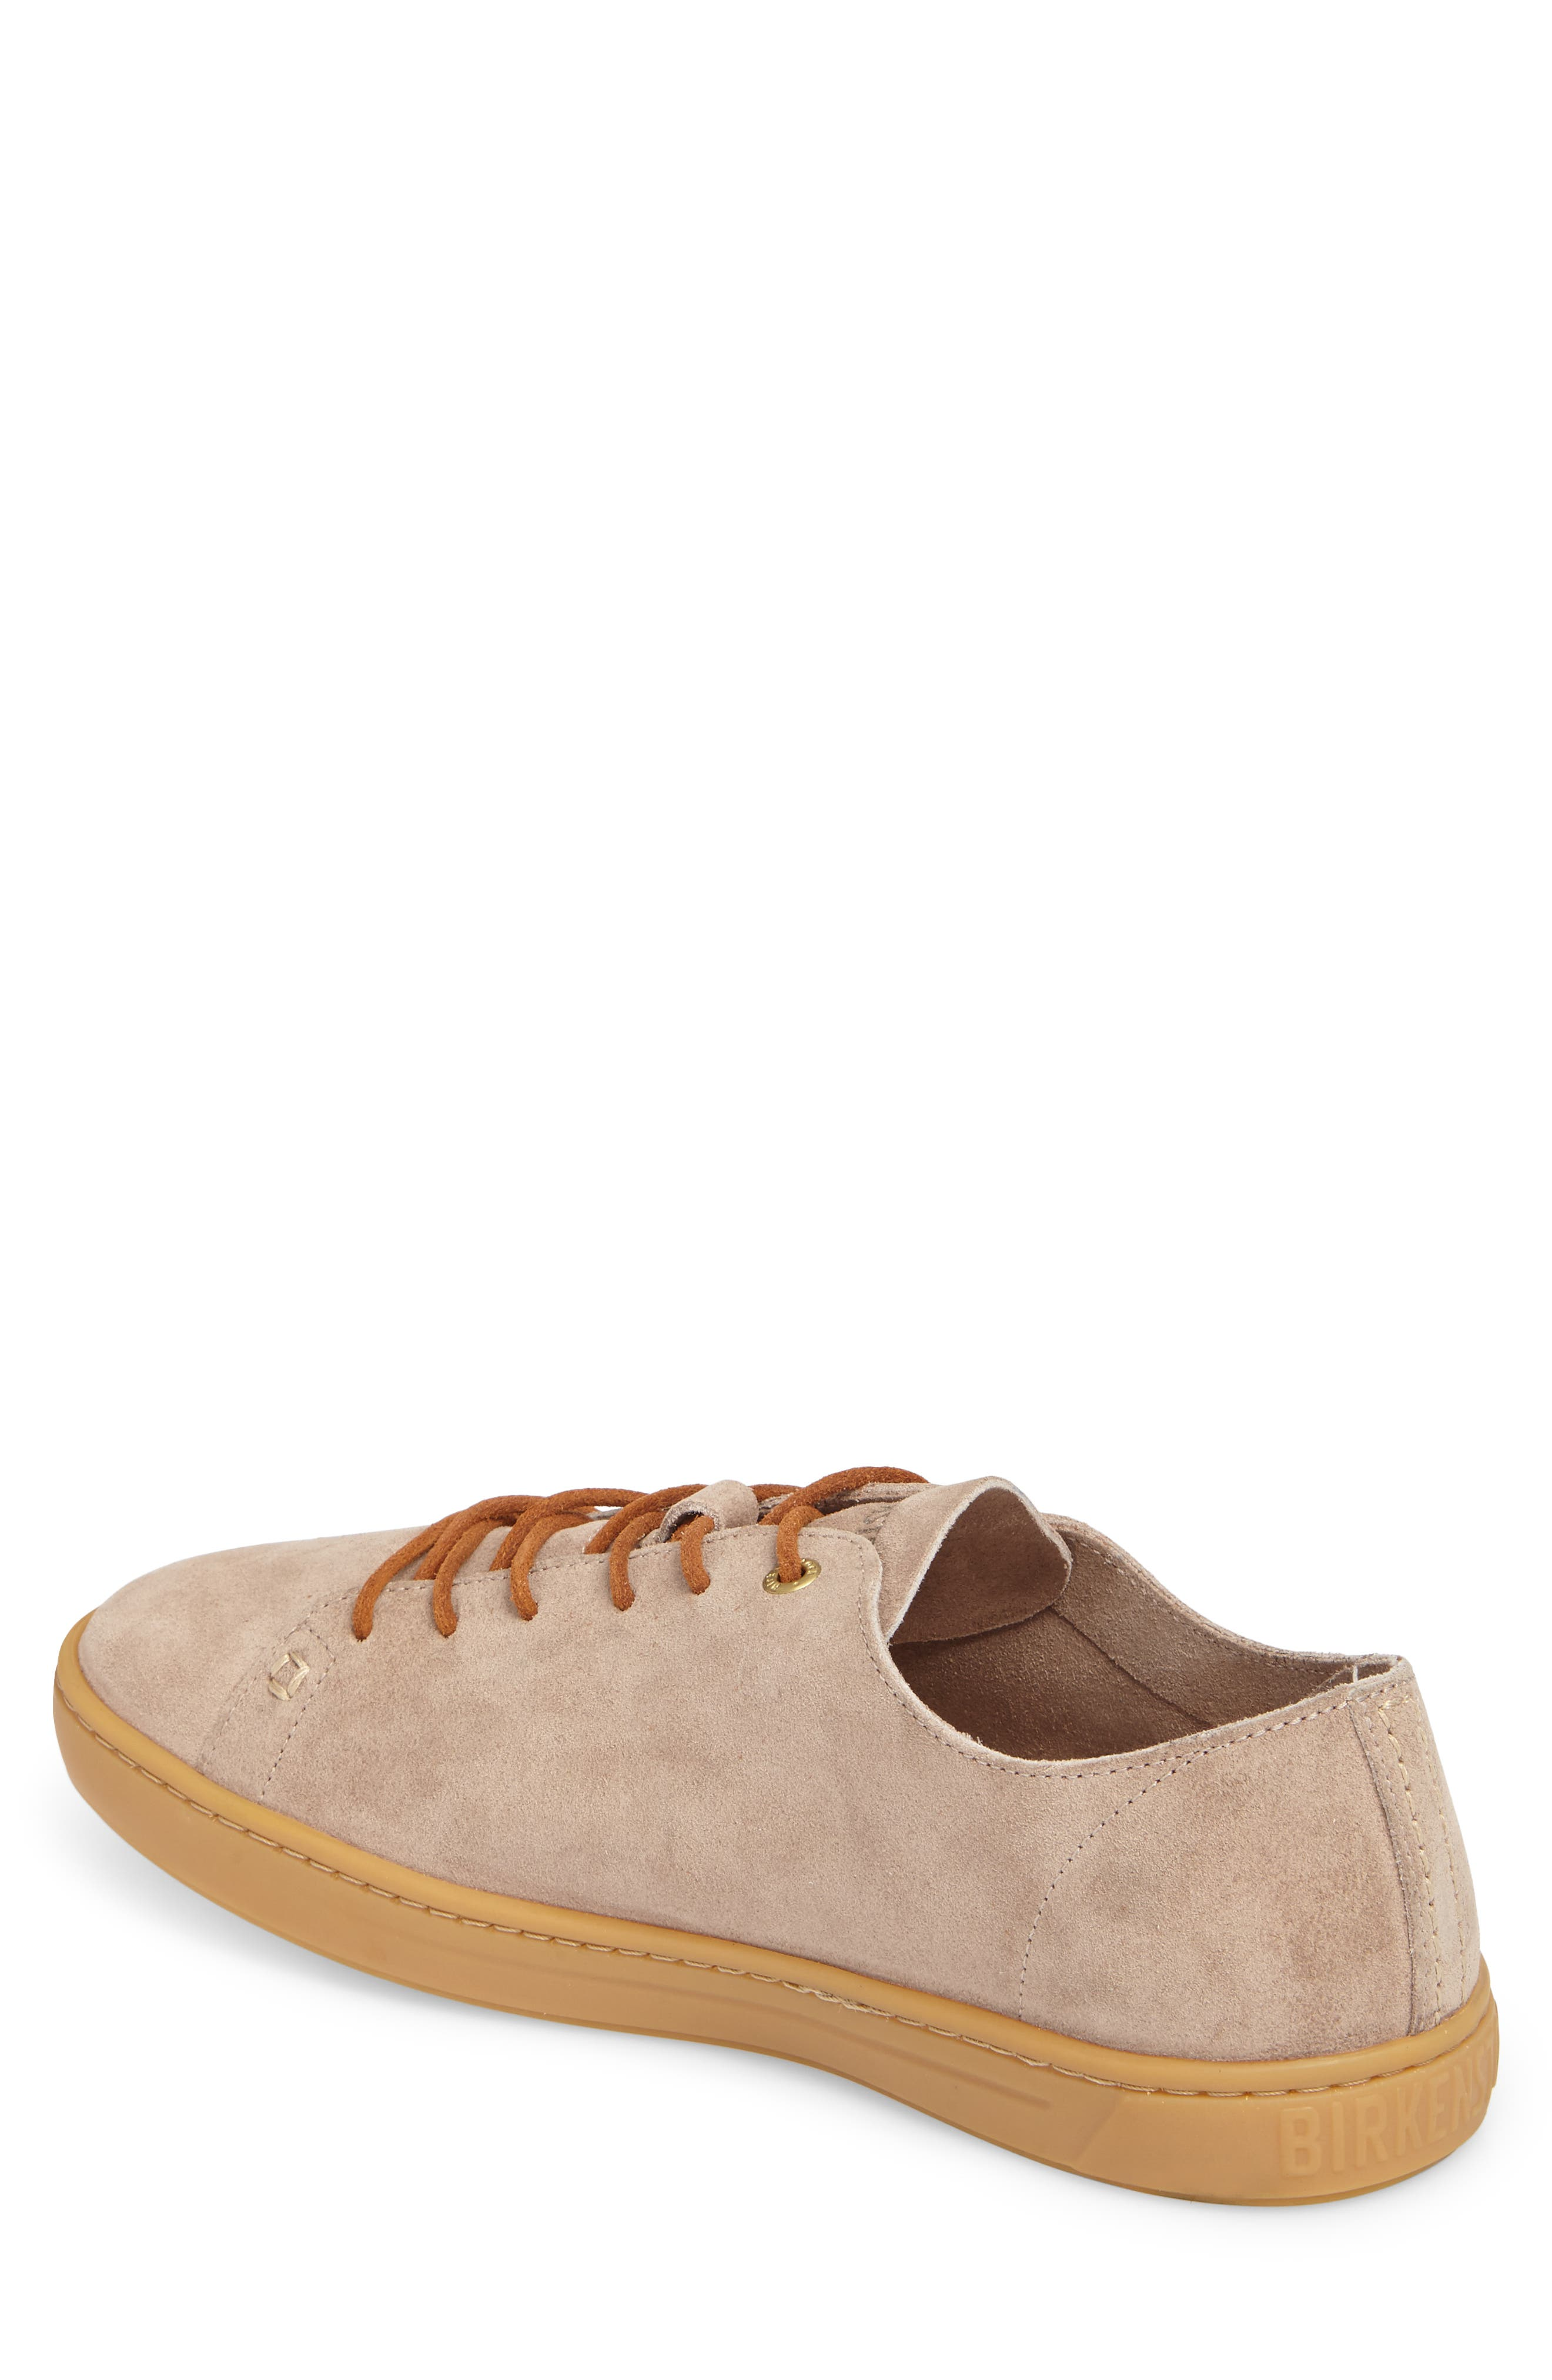 Arran Sneaker,                             Alternate thumbnail 2, color,                             Taupe Suede